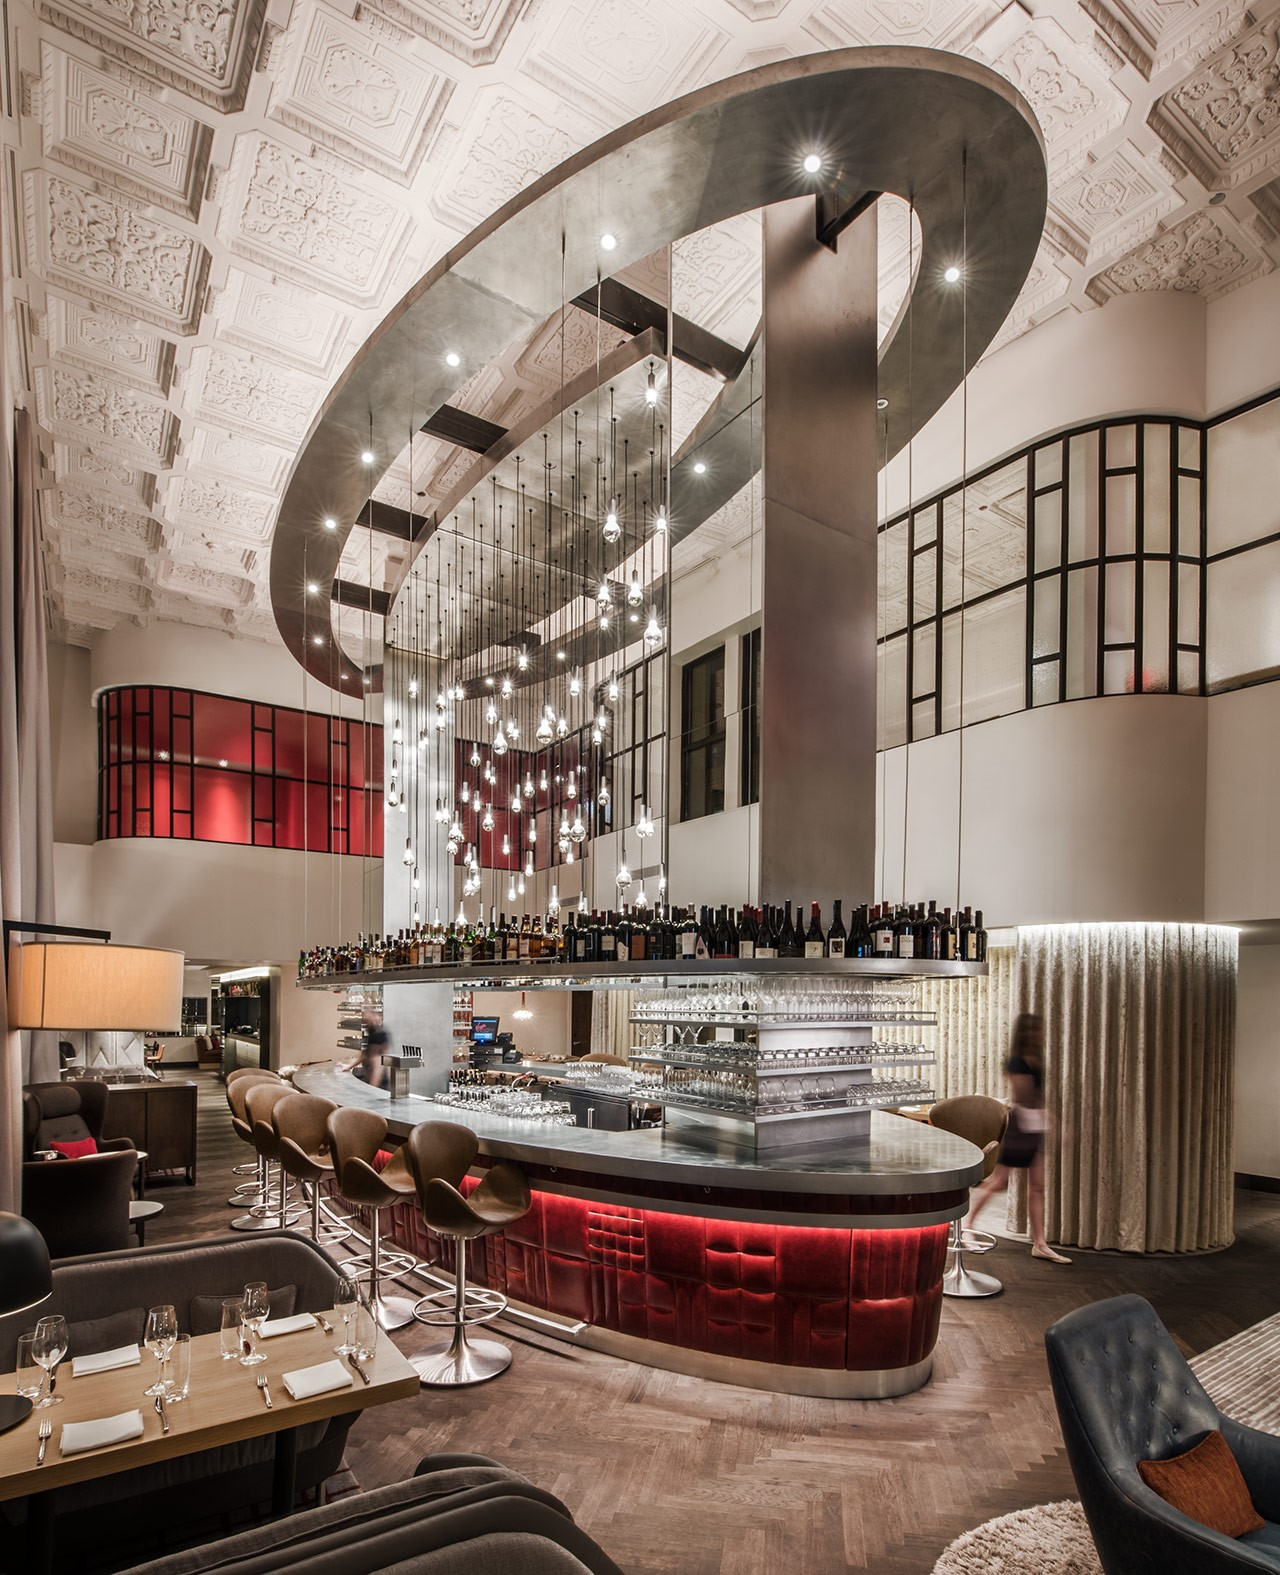 Top 10 States 2015 Virgin Hotel Chicago Us Green Building Council